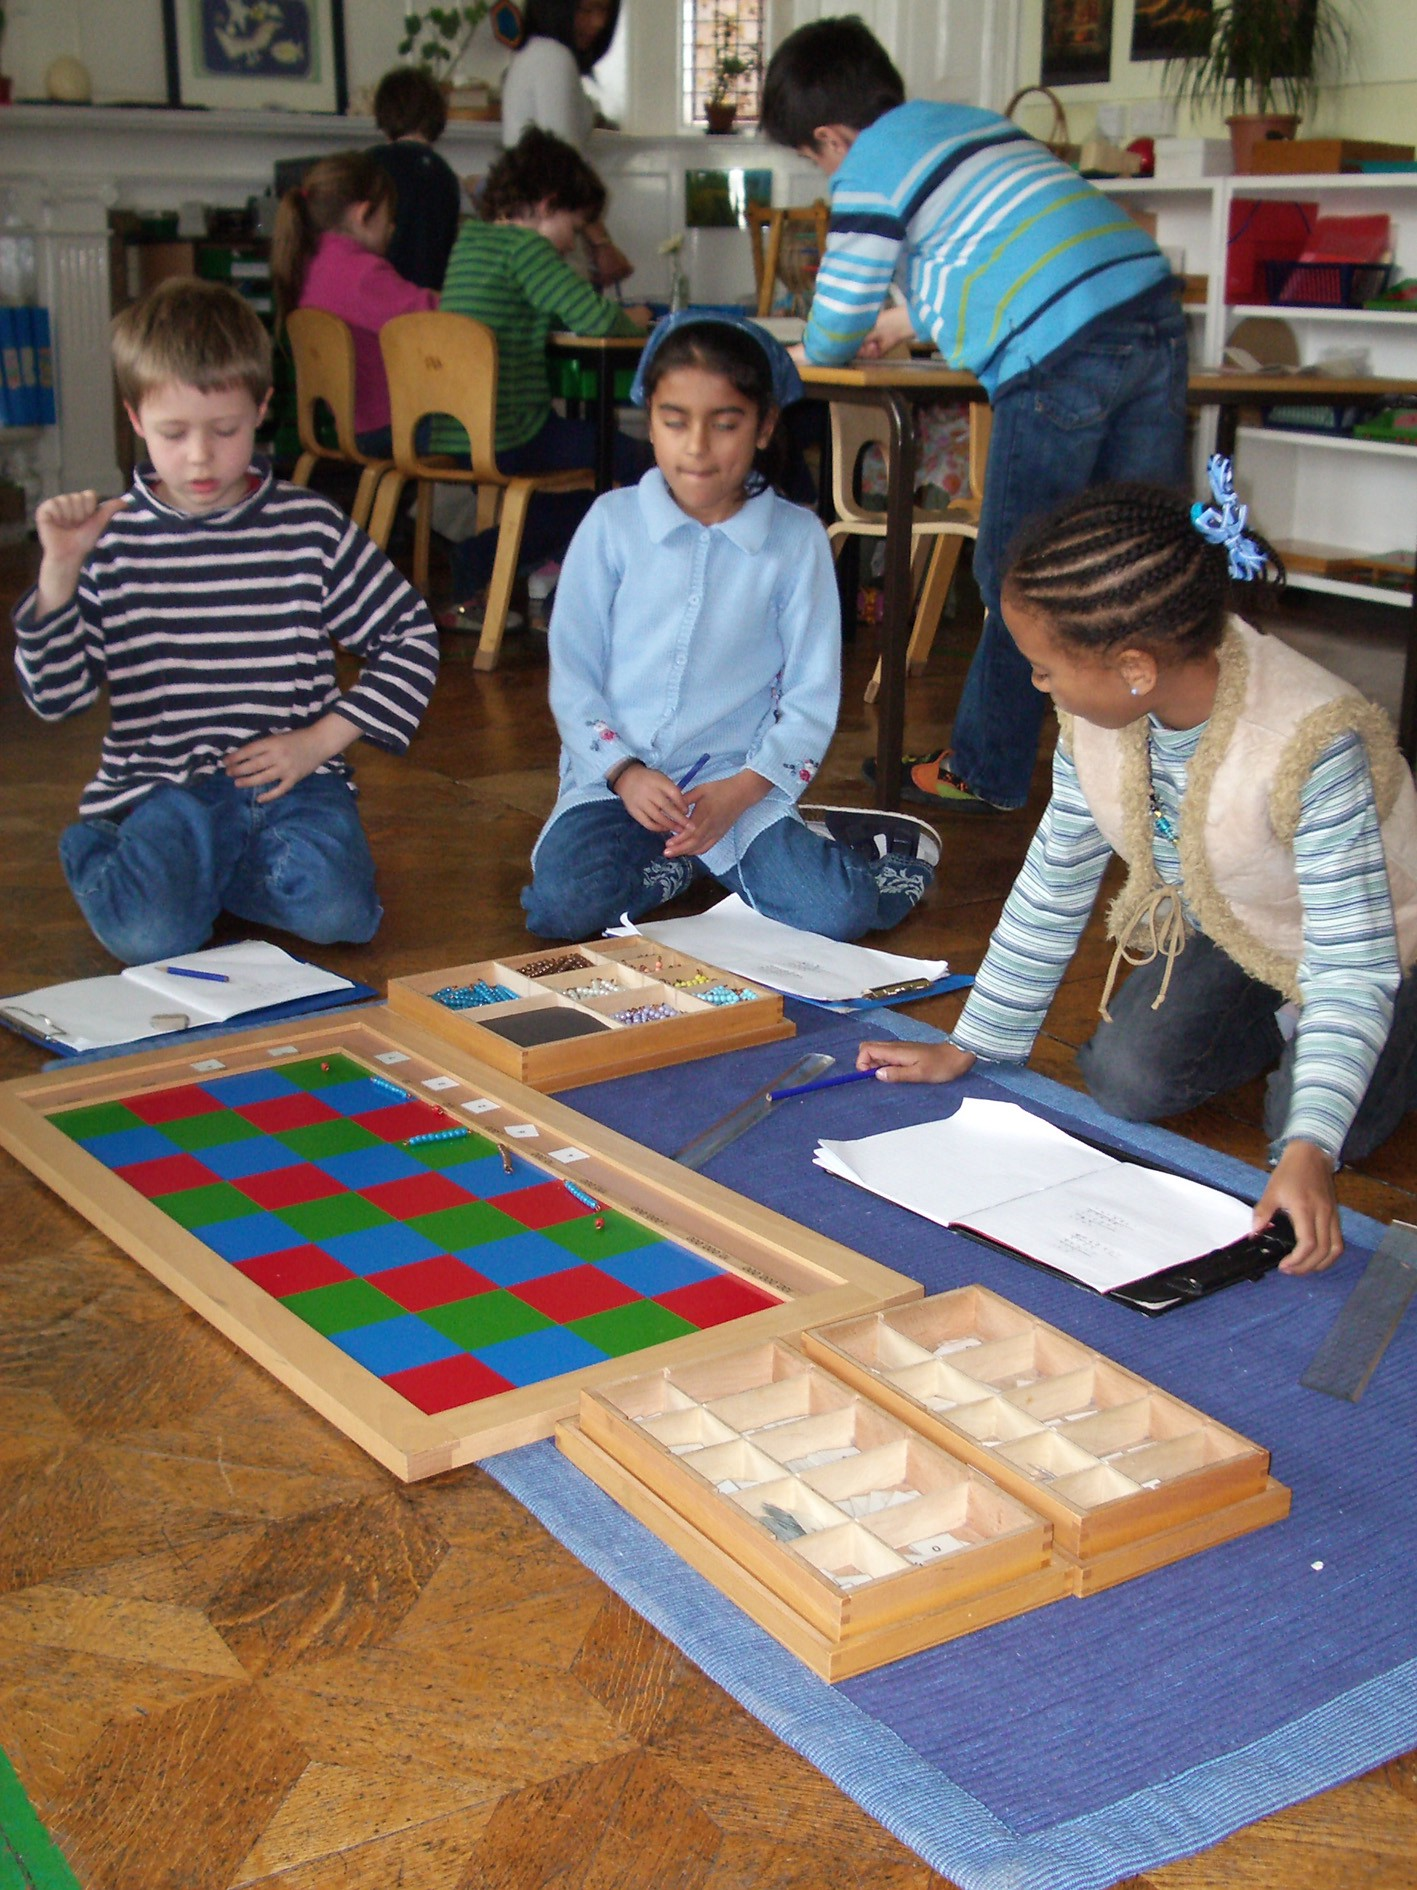 montessori method pros and cons